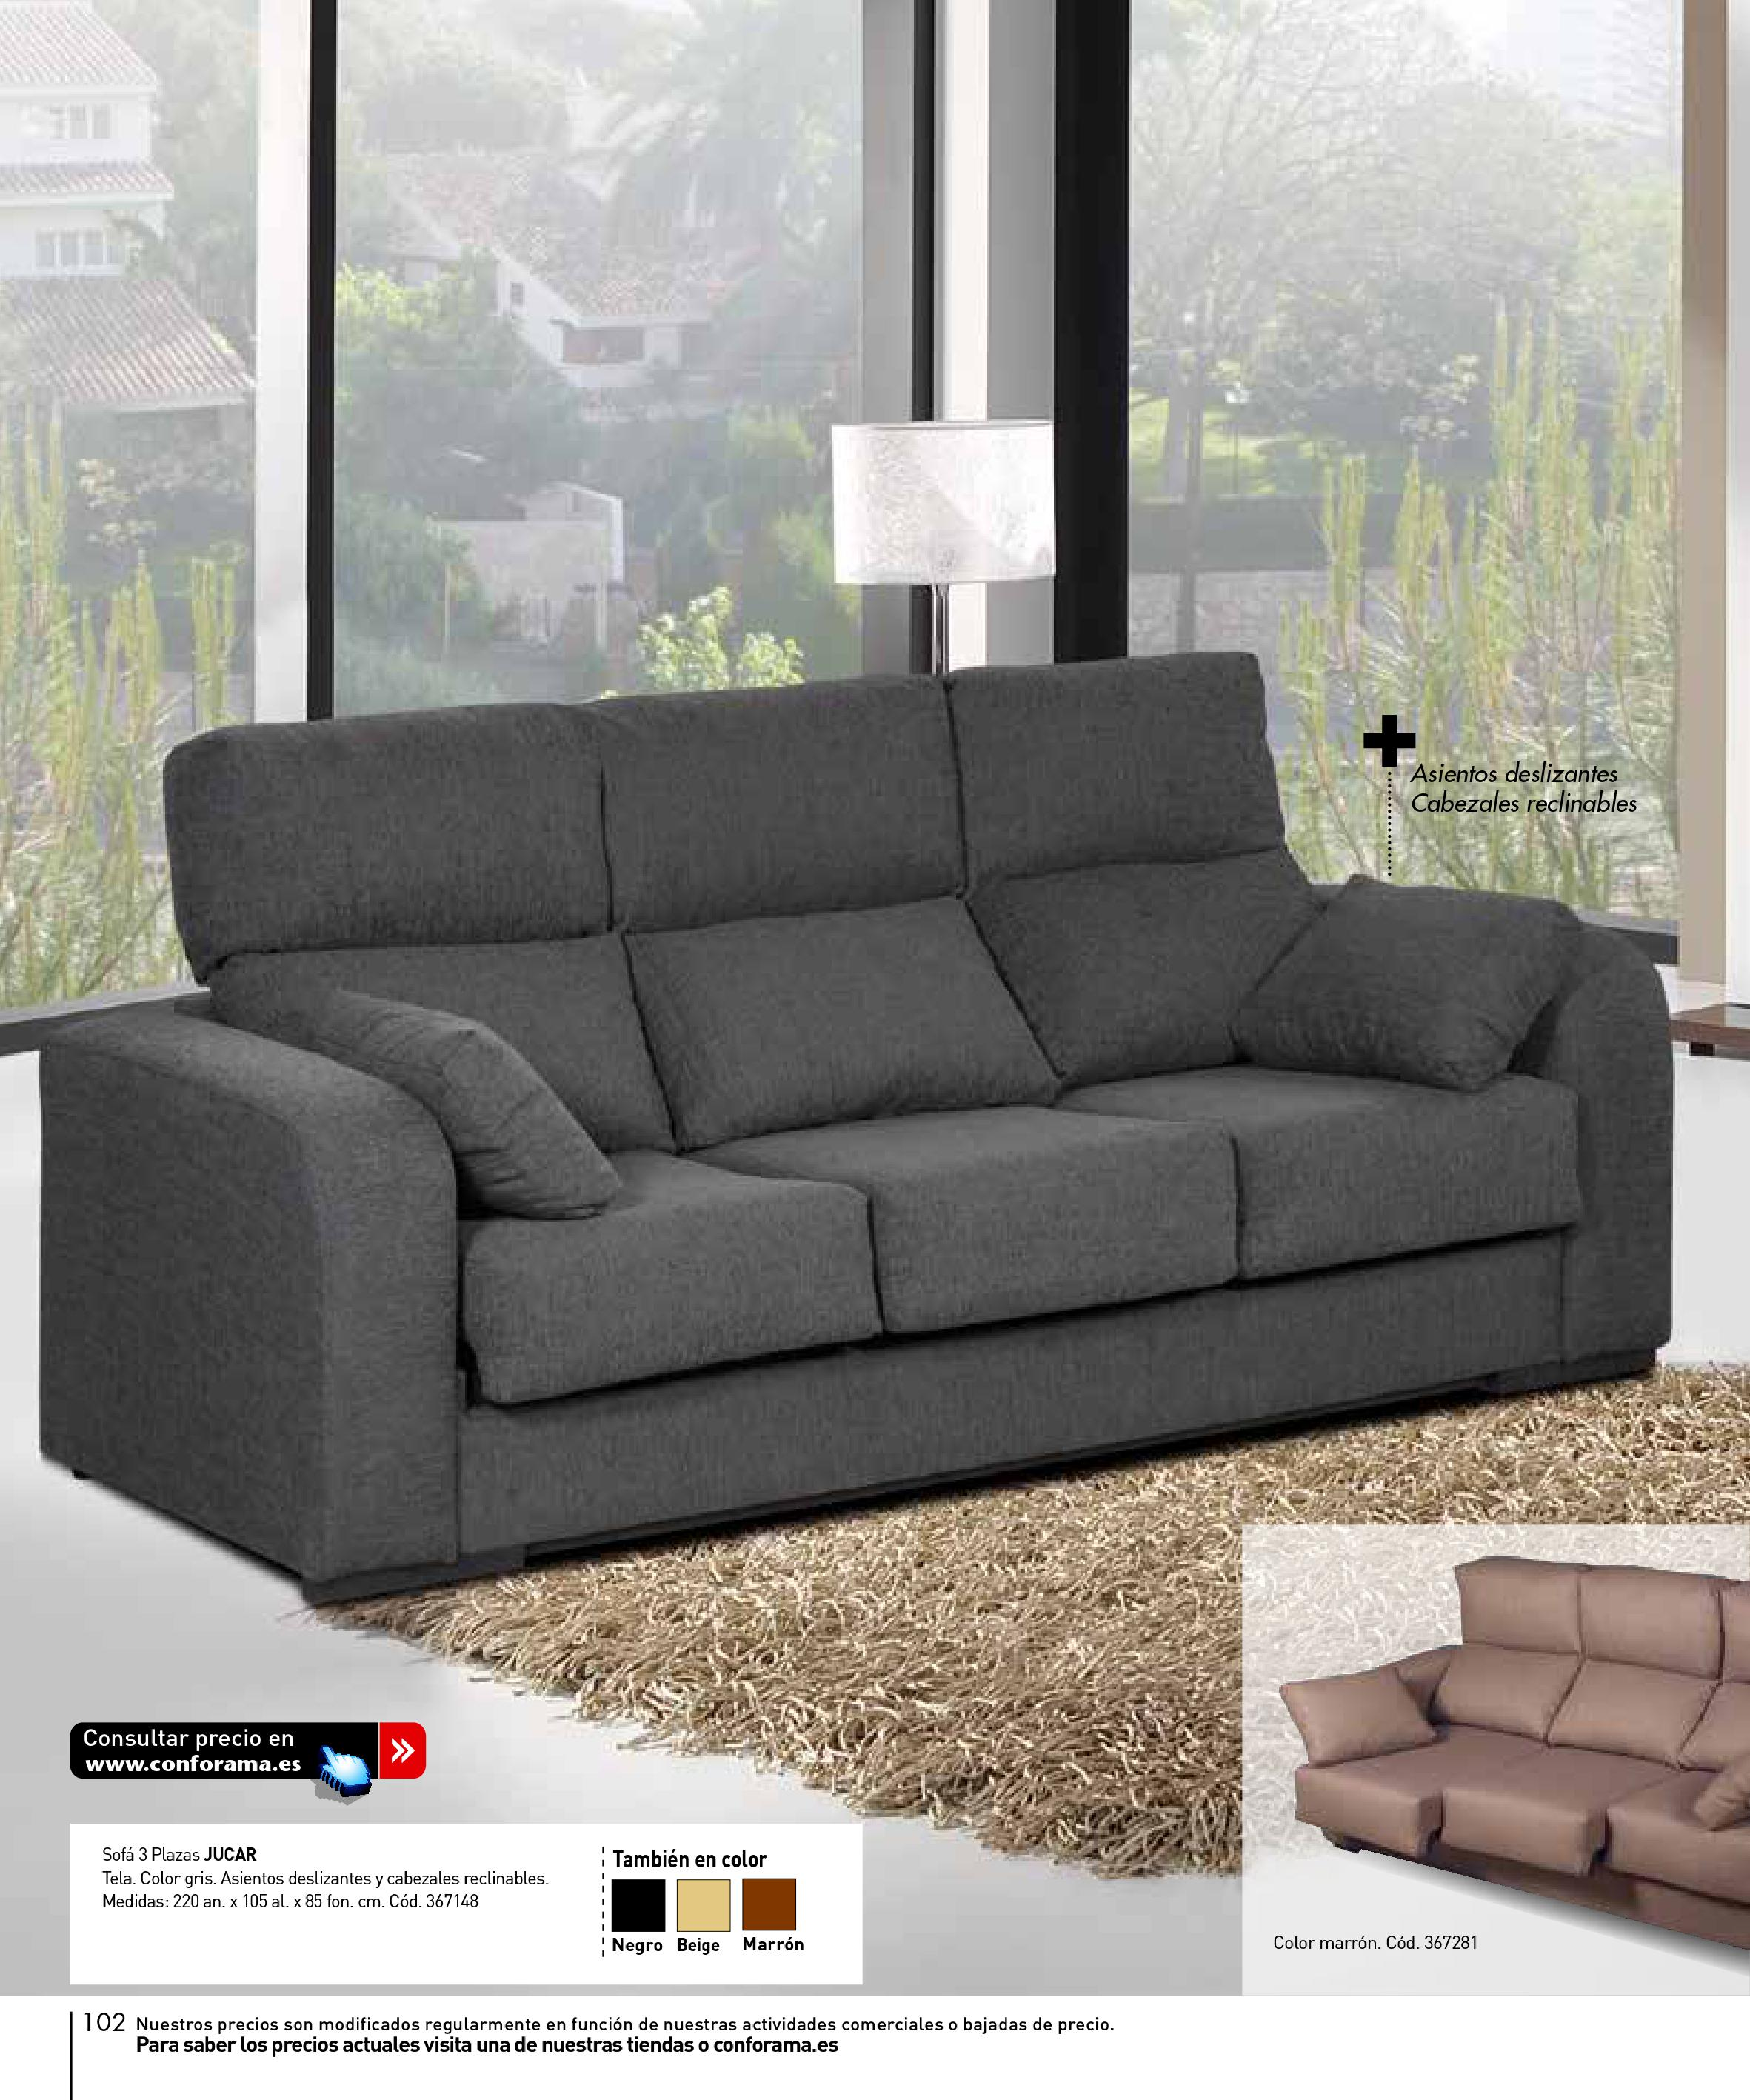 Decorablog revista de decoraci n - Sofas de conforama ...